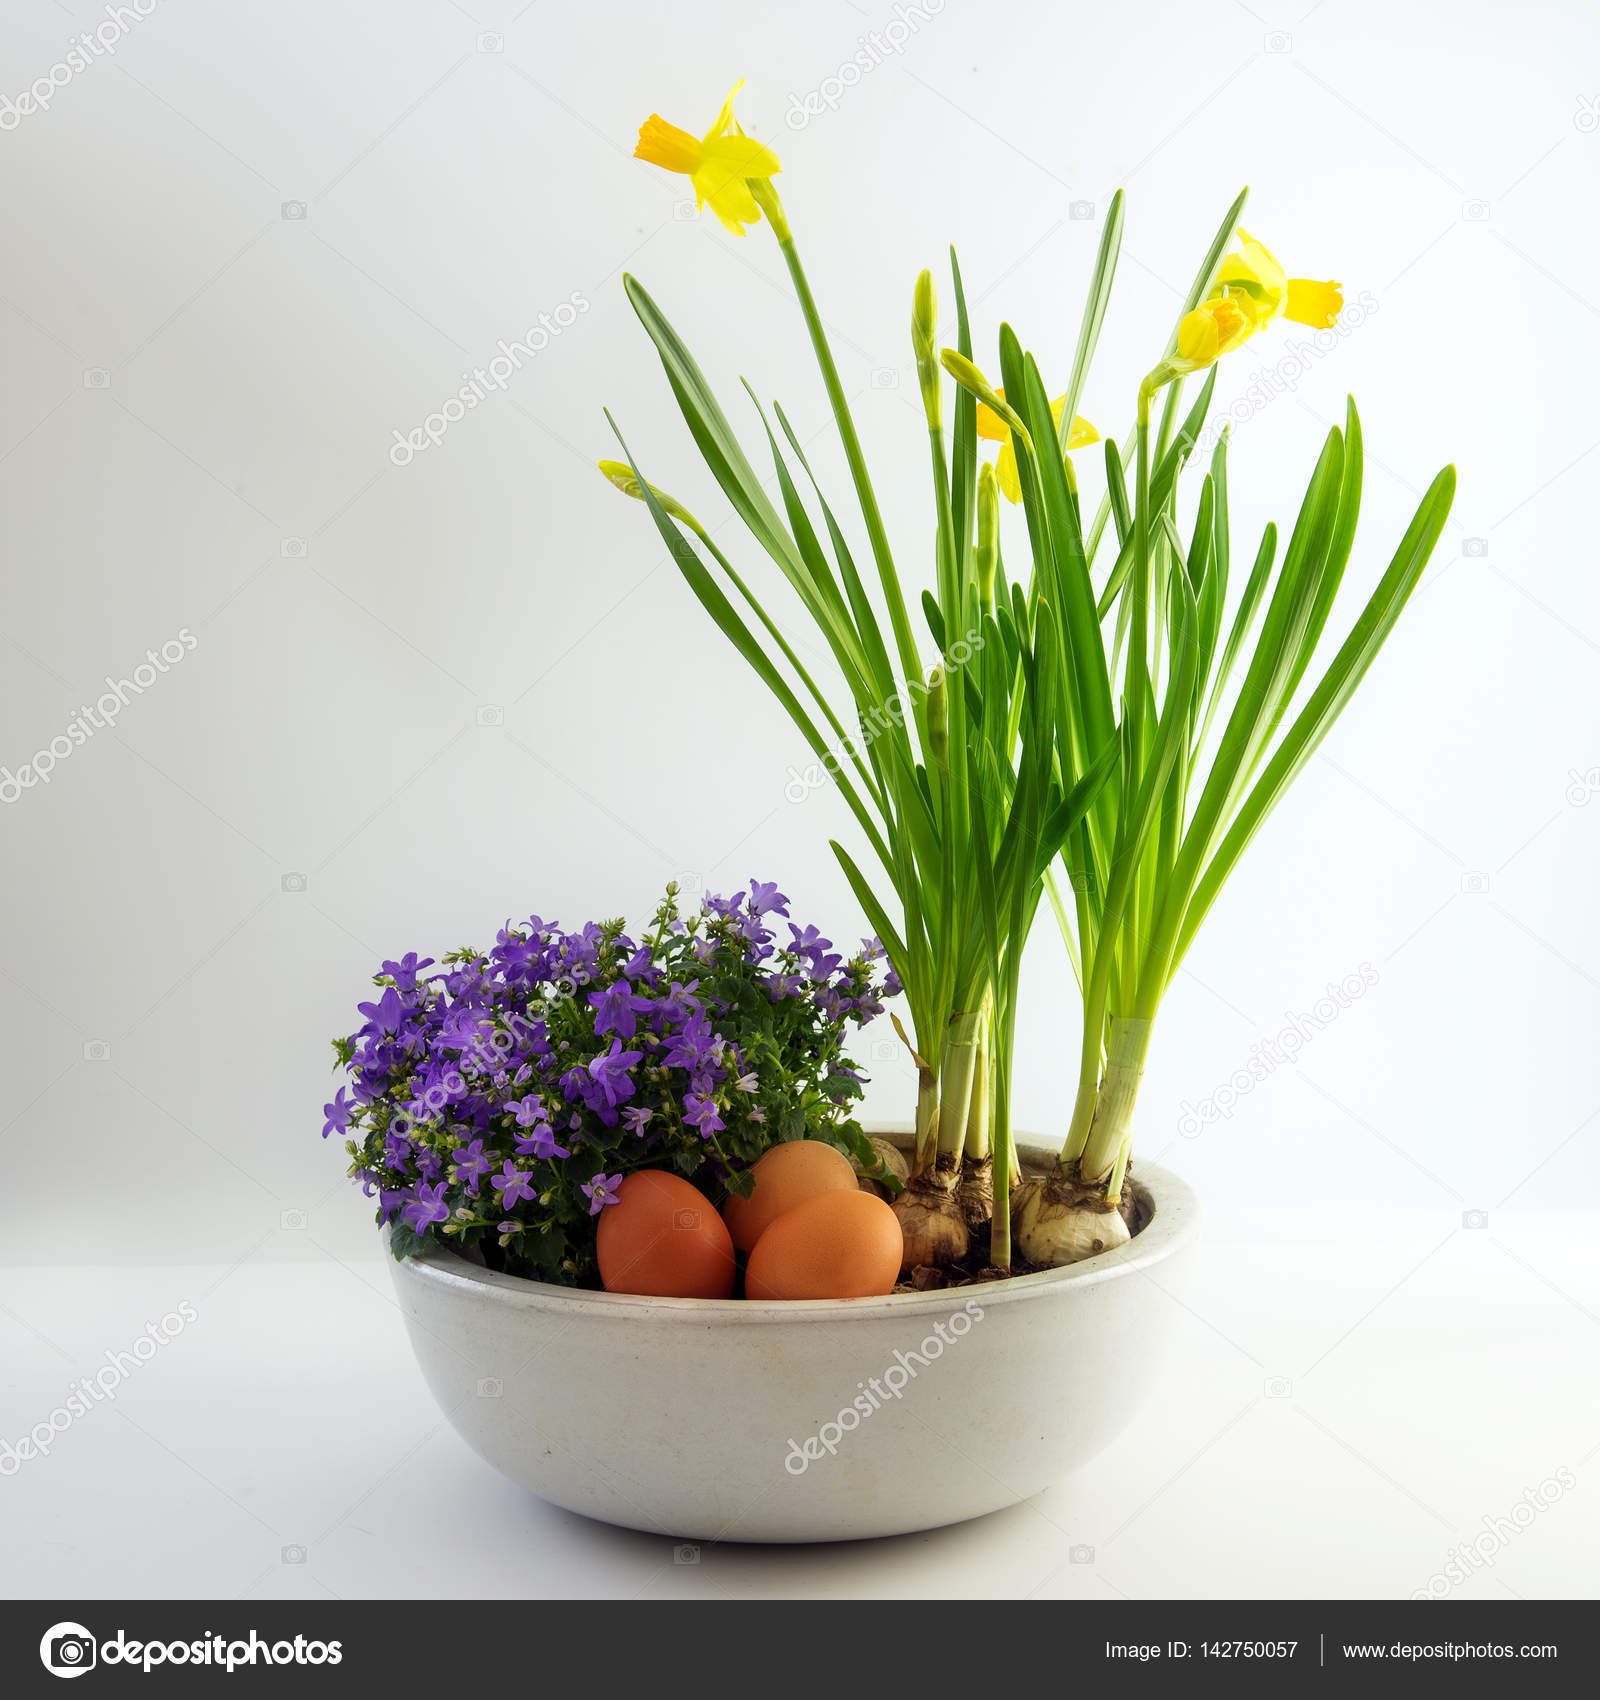 Potted spring flowers and eggs as easter decoration daffodils and potted spring flowers and eggs as easter decoration daffodils and bluebells bright gray background mightylinksfo